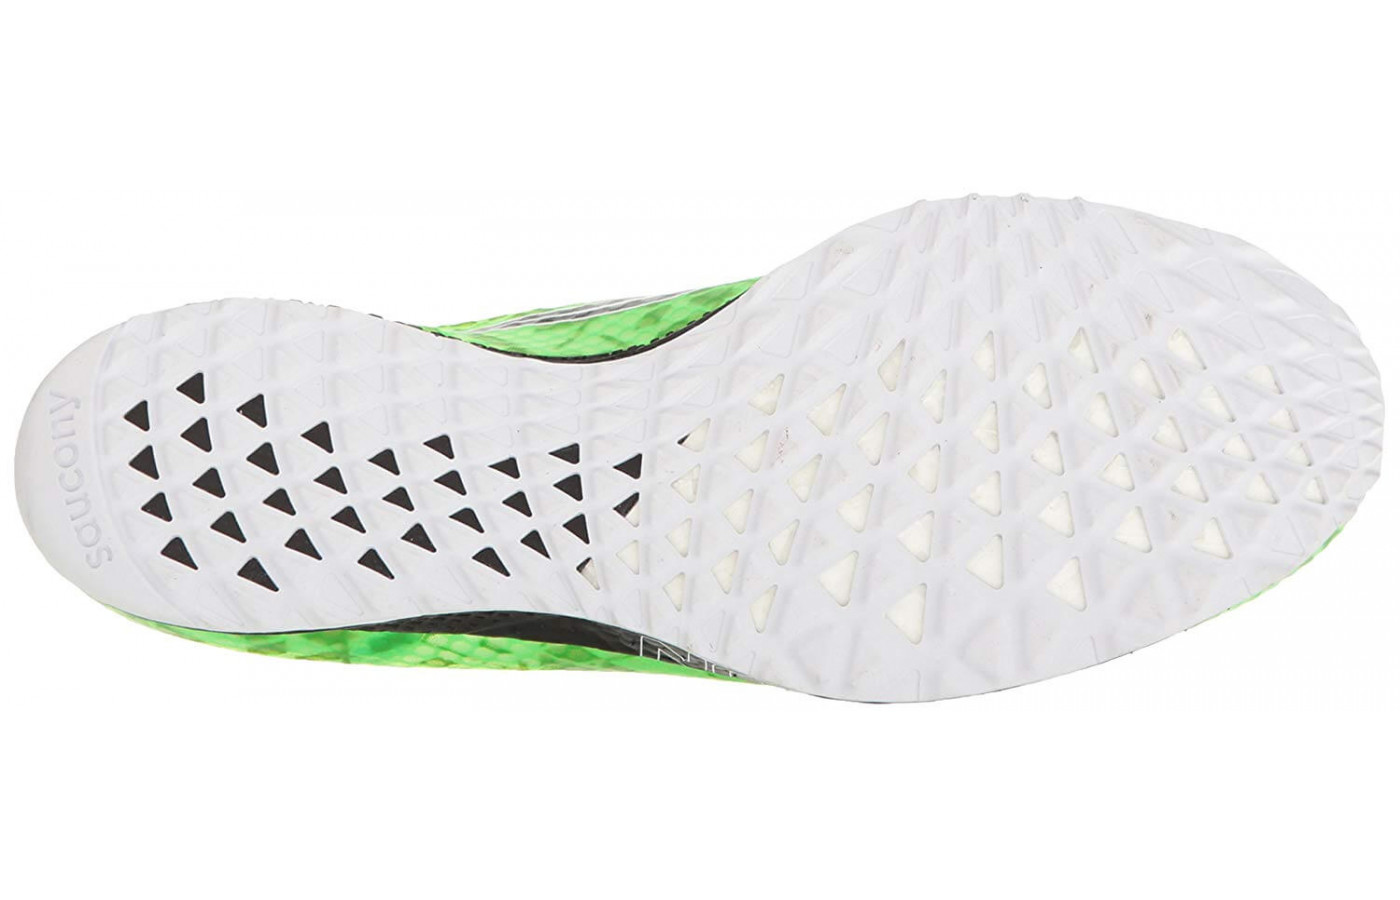 Saucony Endorphin Racer 2 bottom outsole view